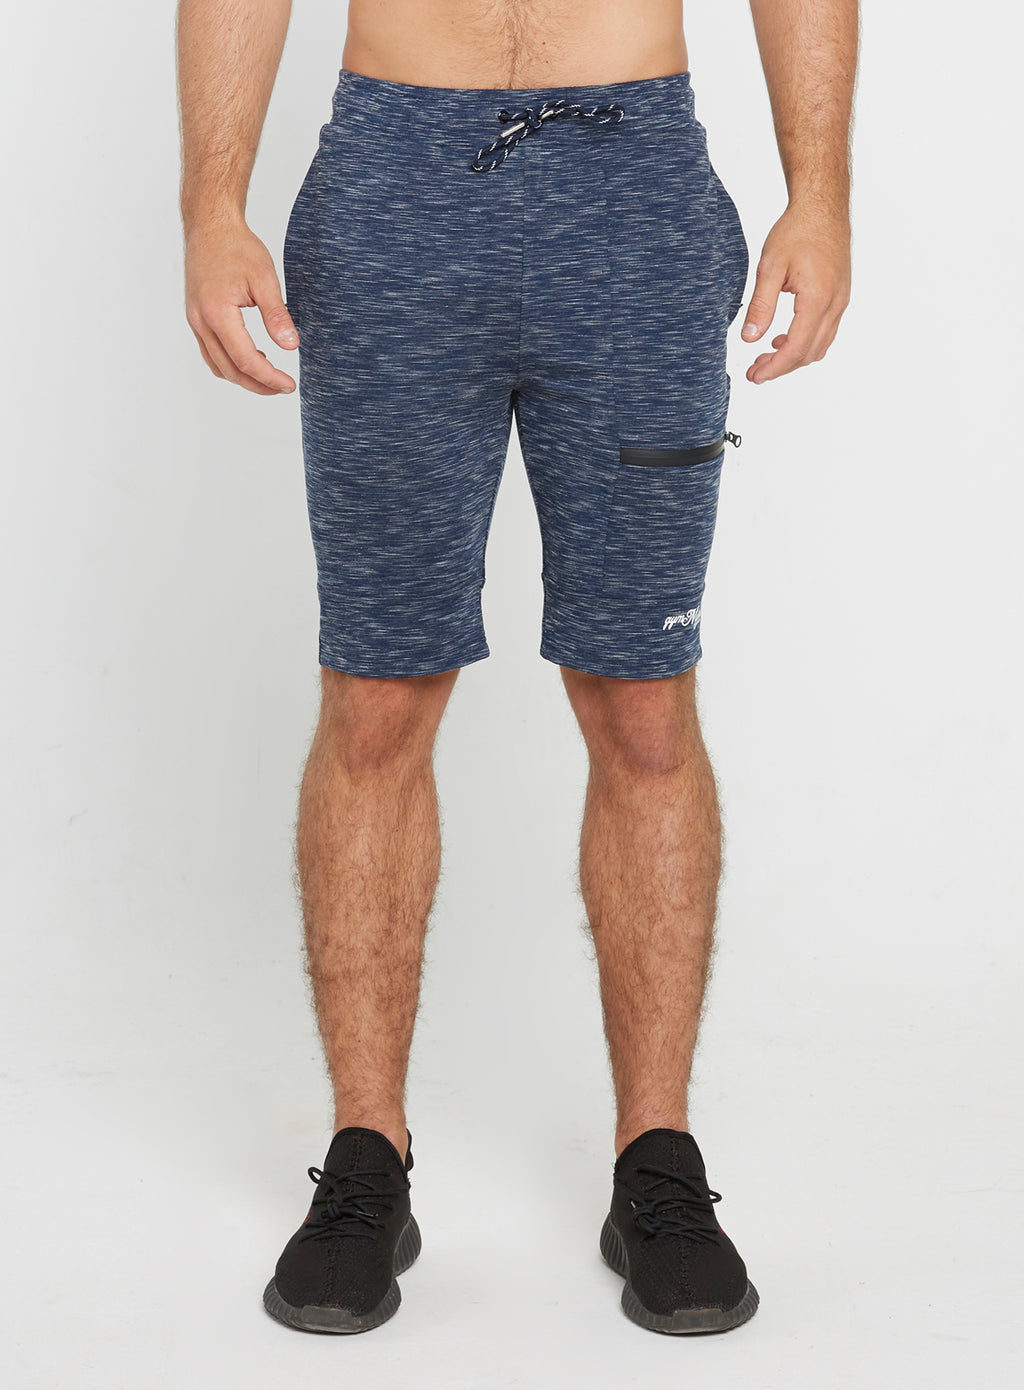 Gym Monkee - Navy Striped Shorts FRONT